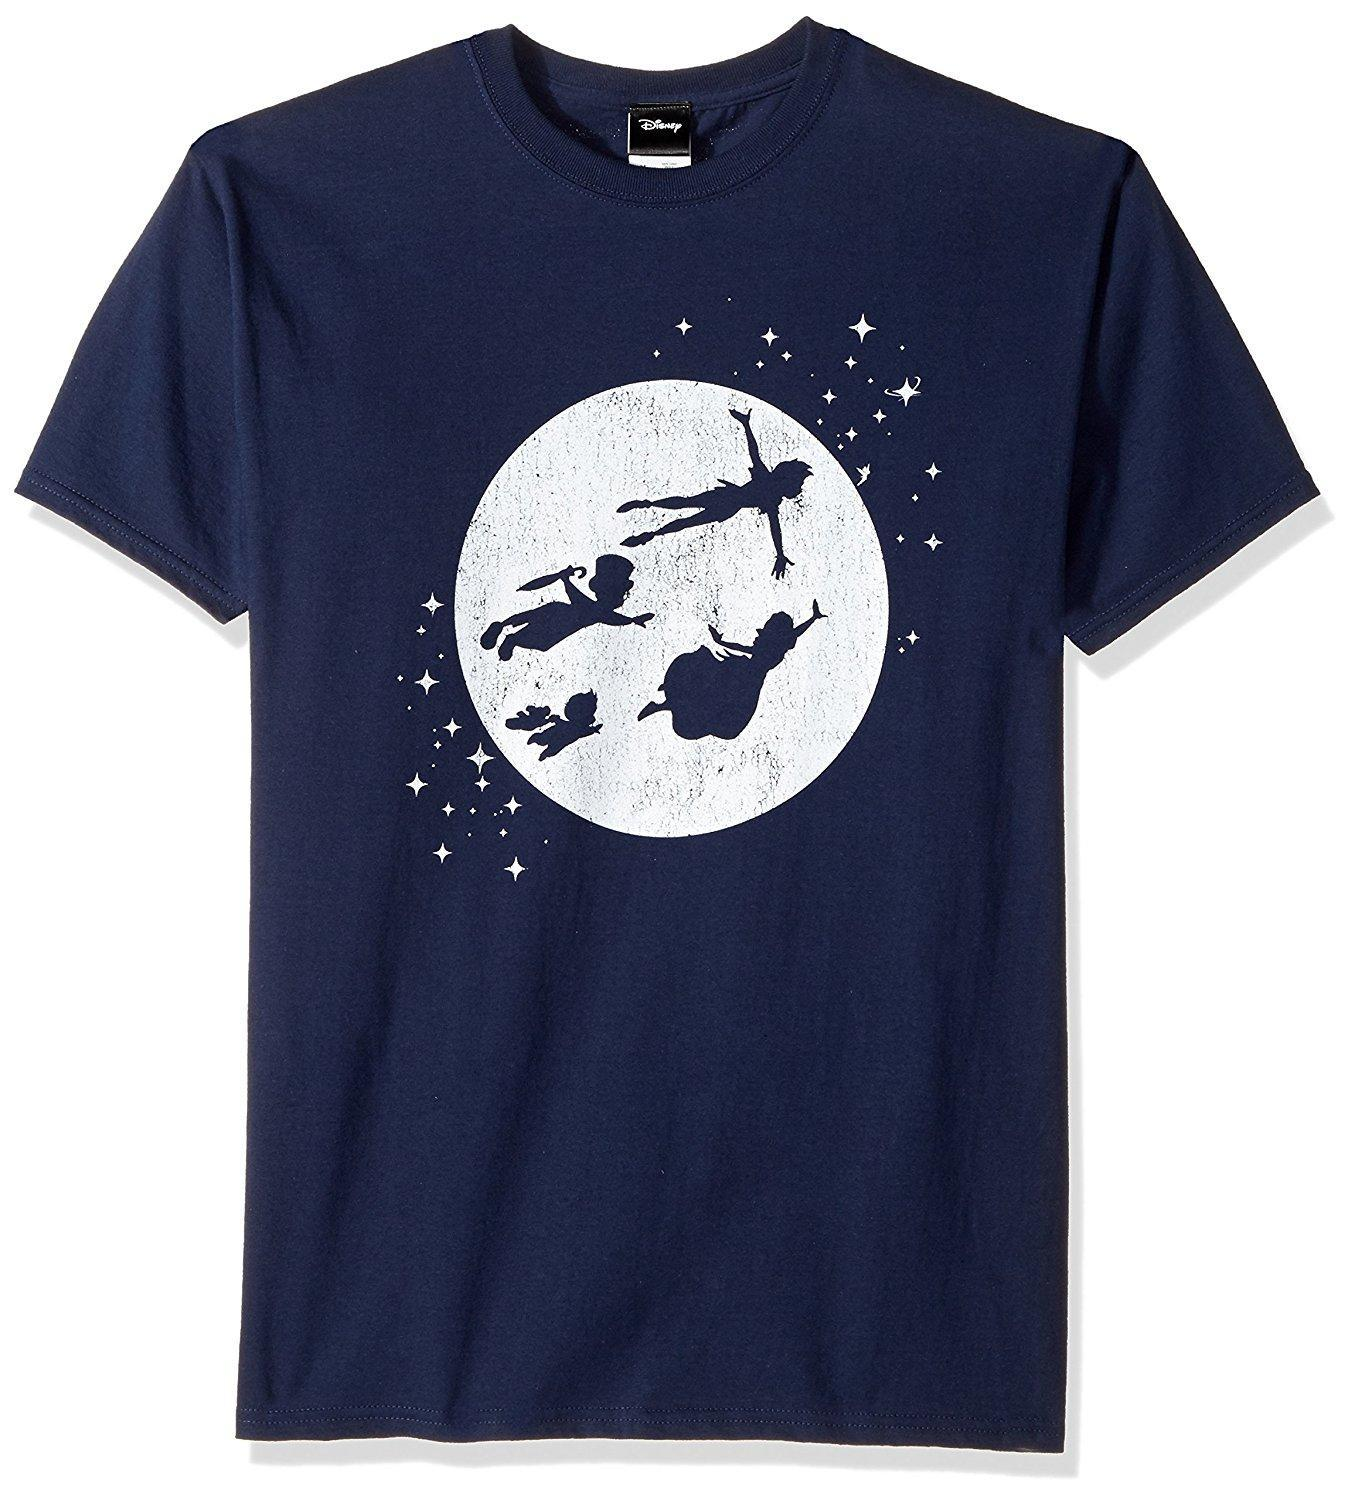 Camiseta de Peter Pan